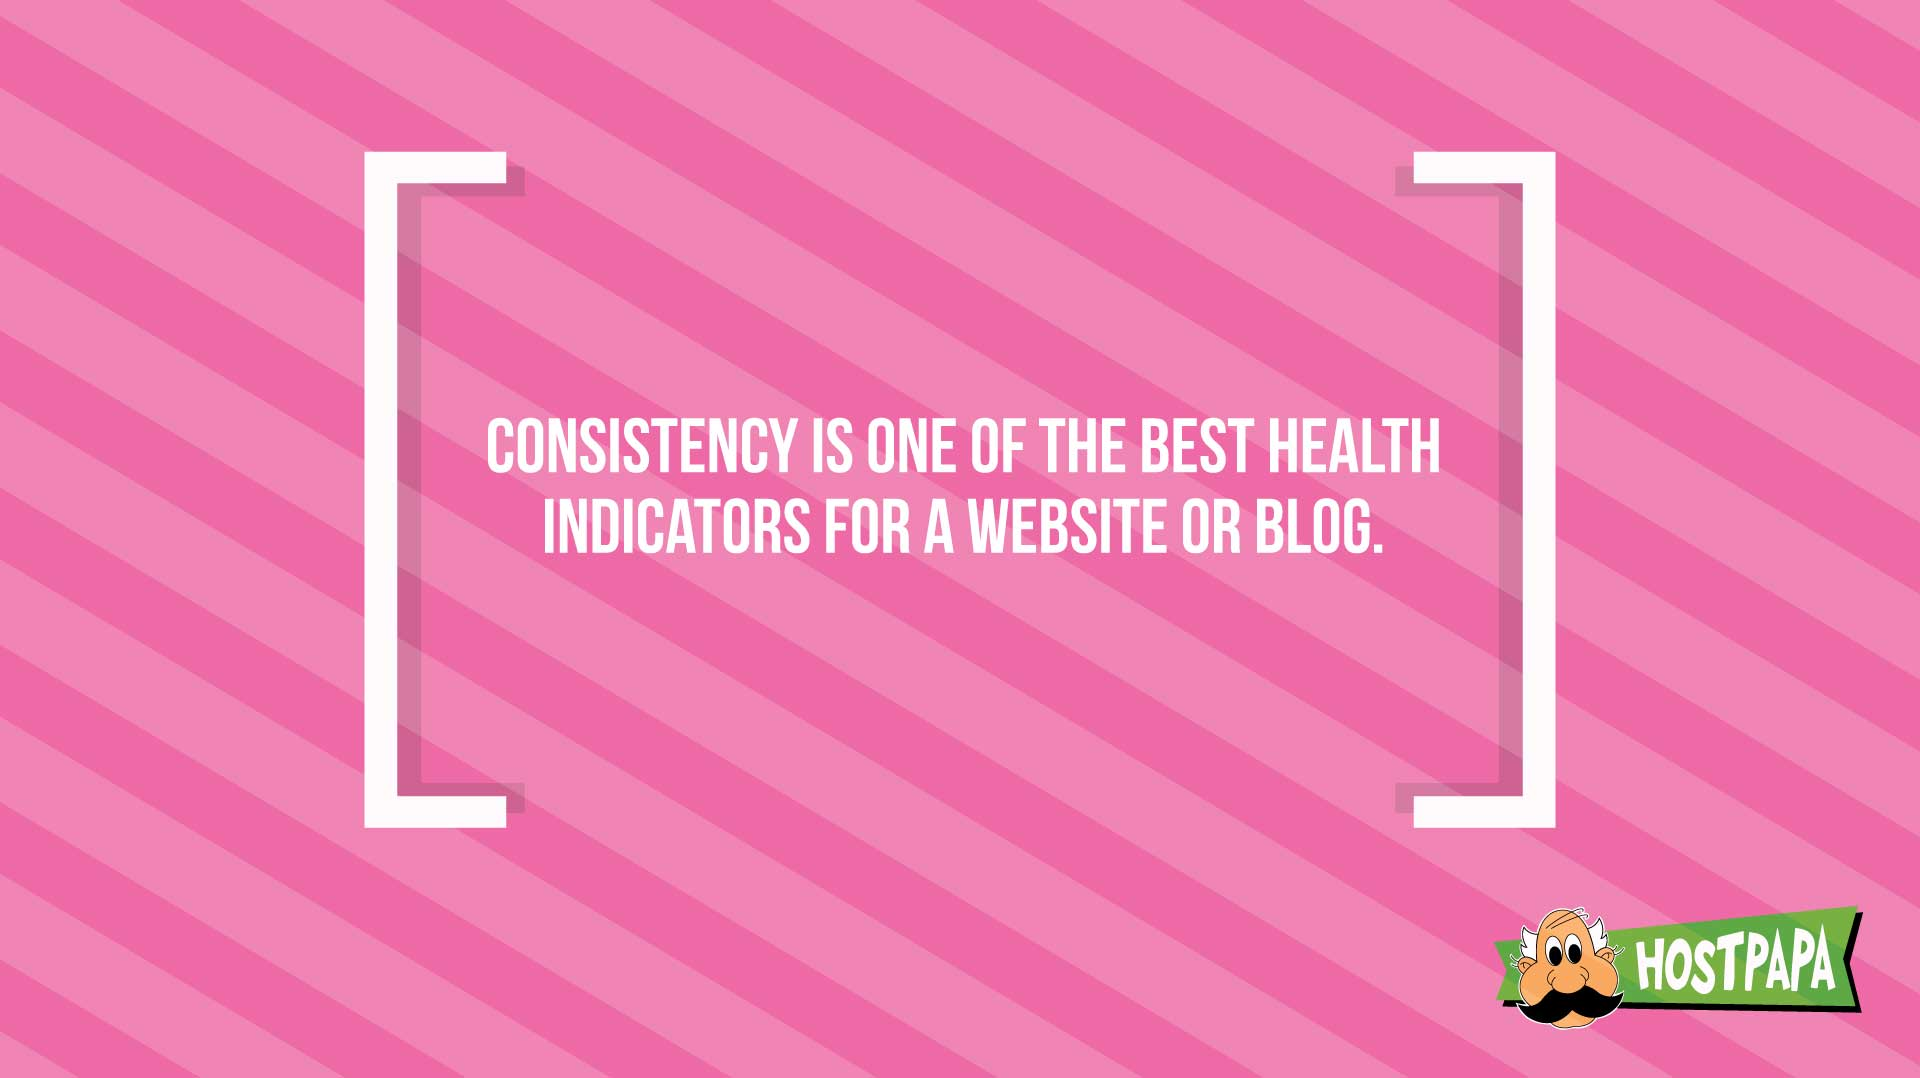 Consistency is one of the best health indicators for a web blog